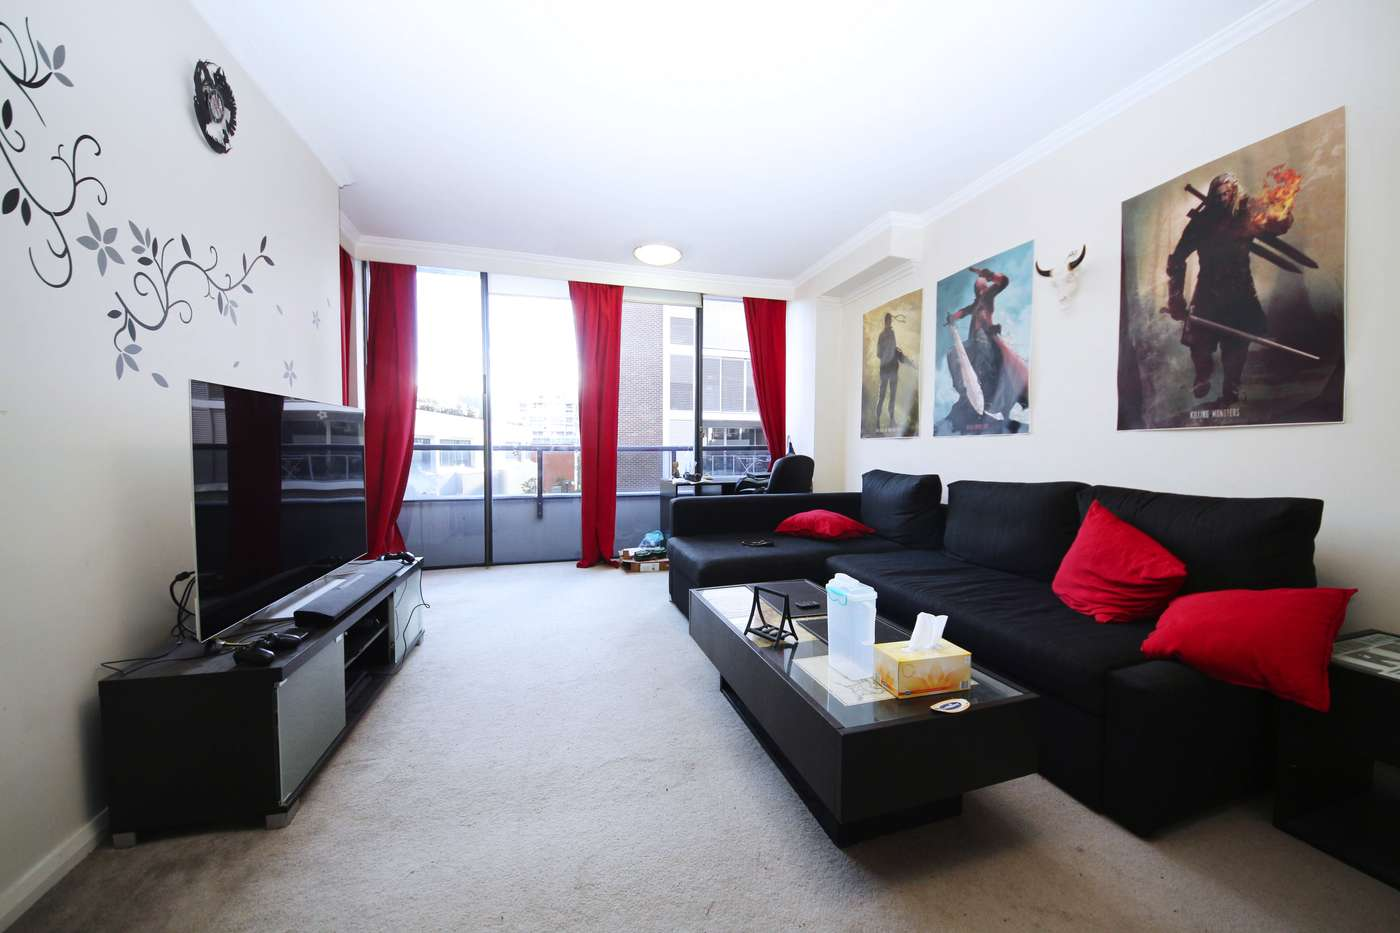 Main view of Homely apartment listing, 39A/1 Brown Street, Ashfield, NSW 2131